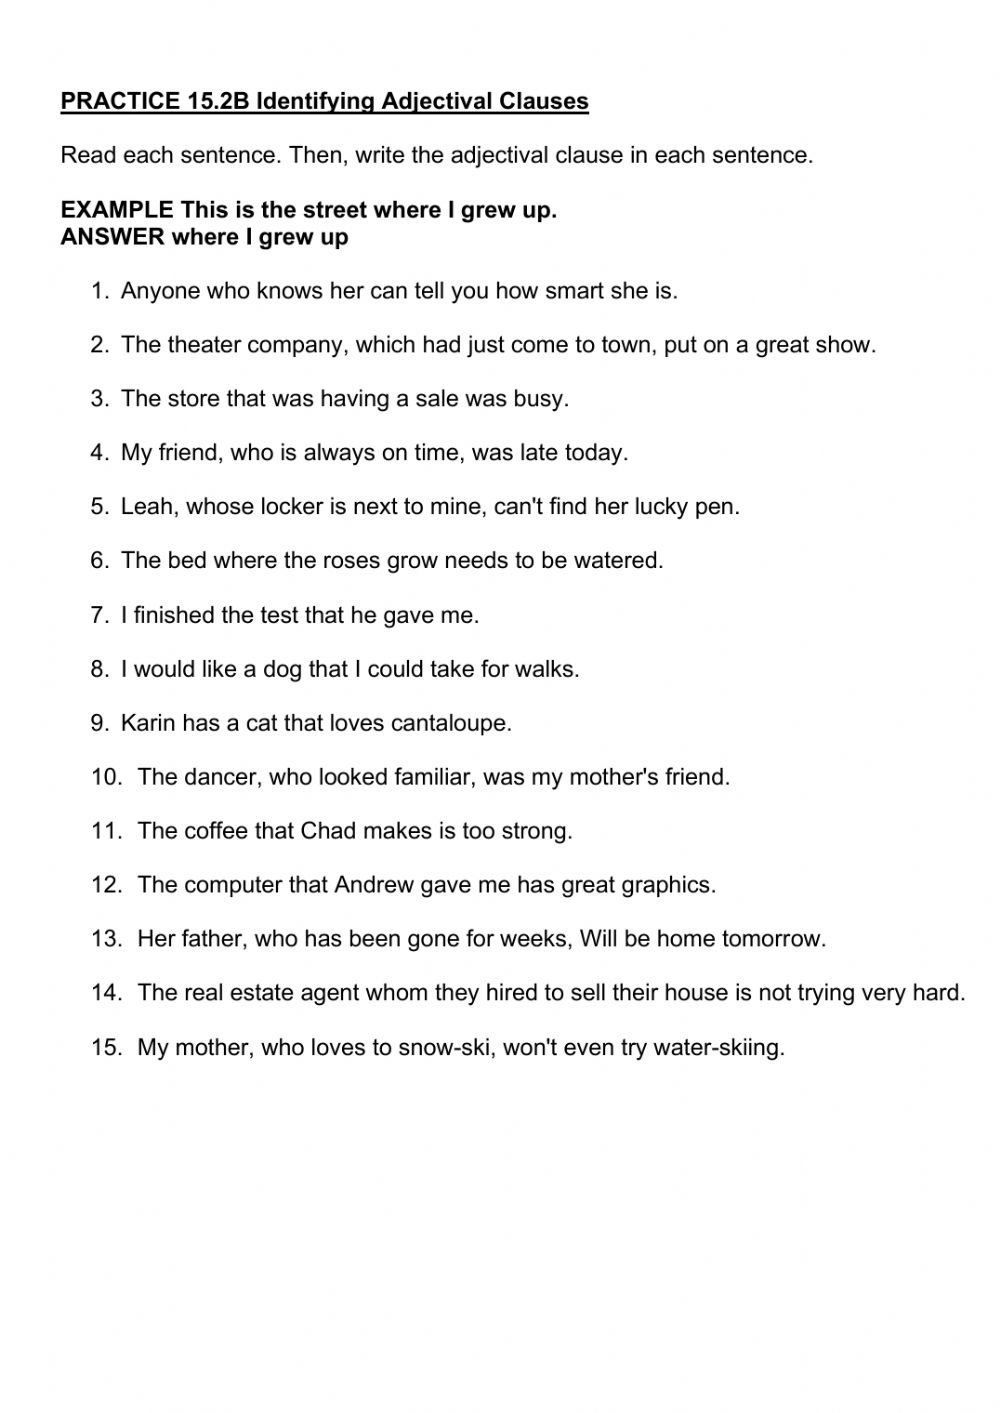 hight resolution of PRACTICE 15.2B Identifying Adjectival Clauses worksheet